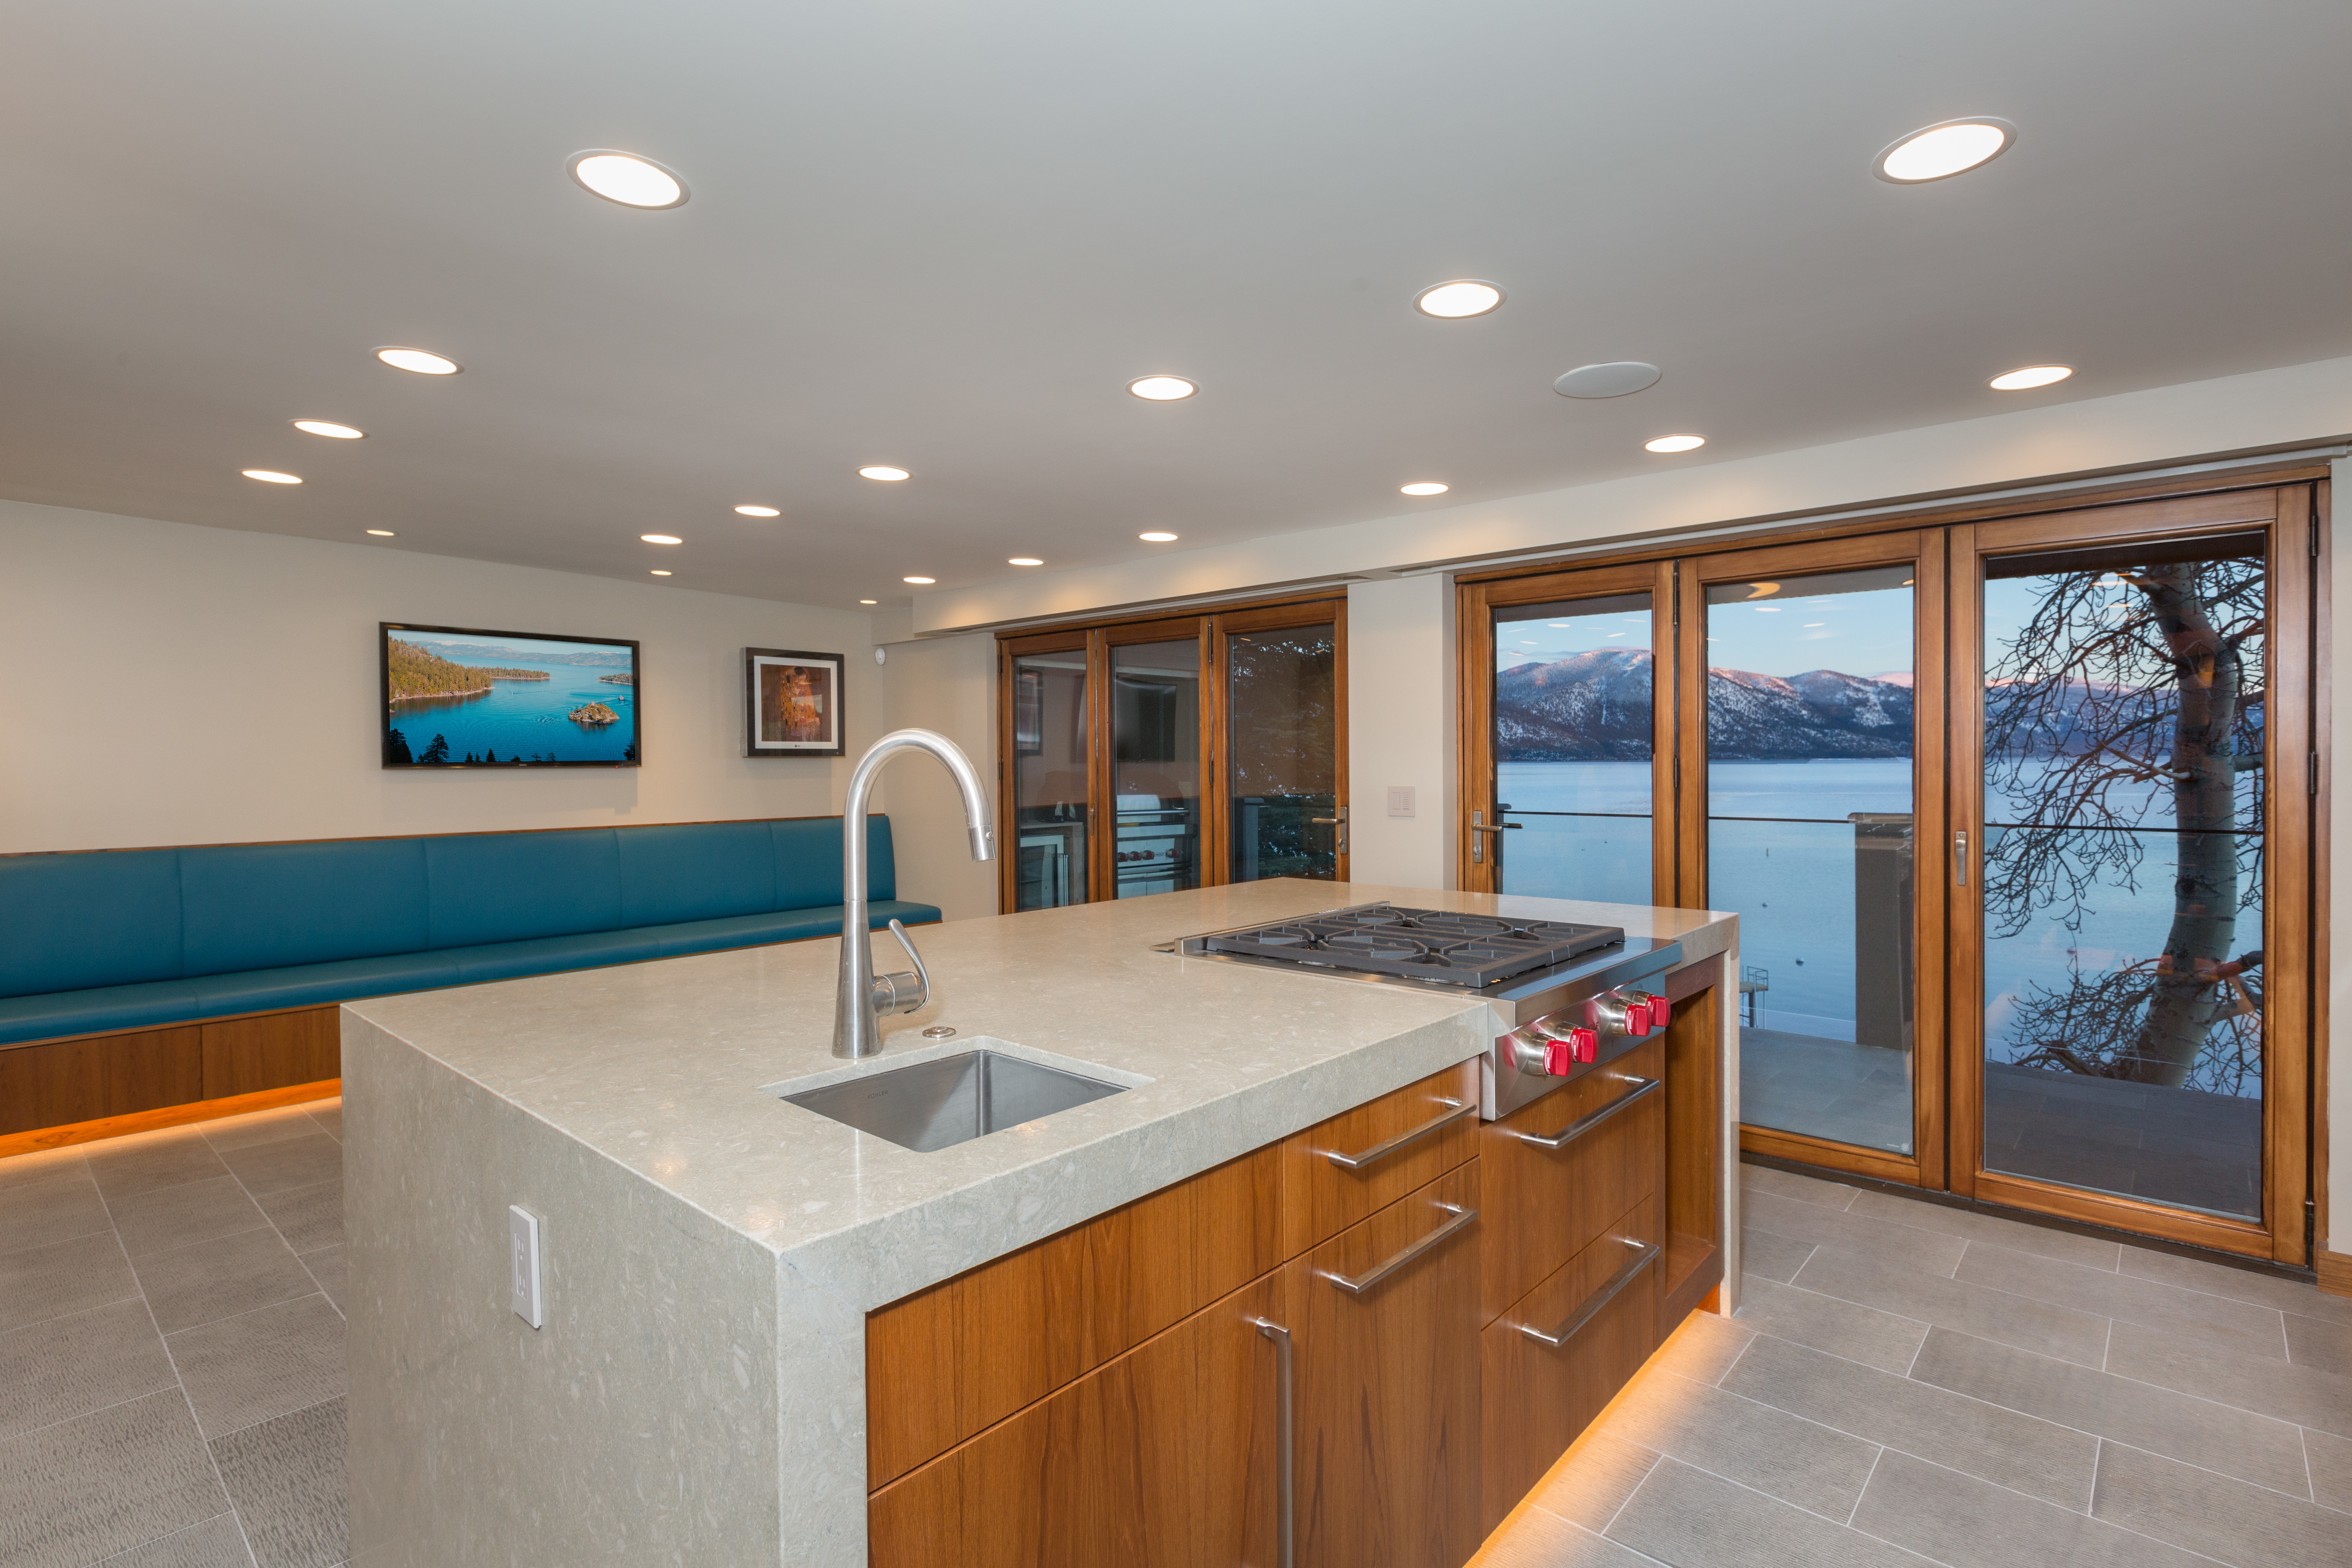 Home Remodel Gallery 475 Lakes 1671